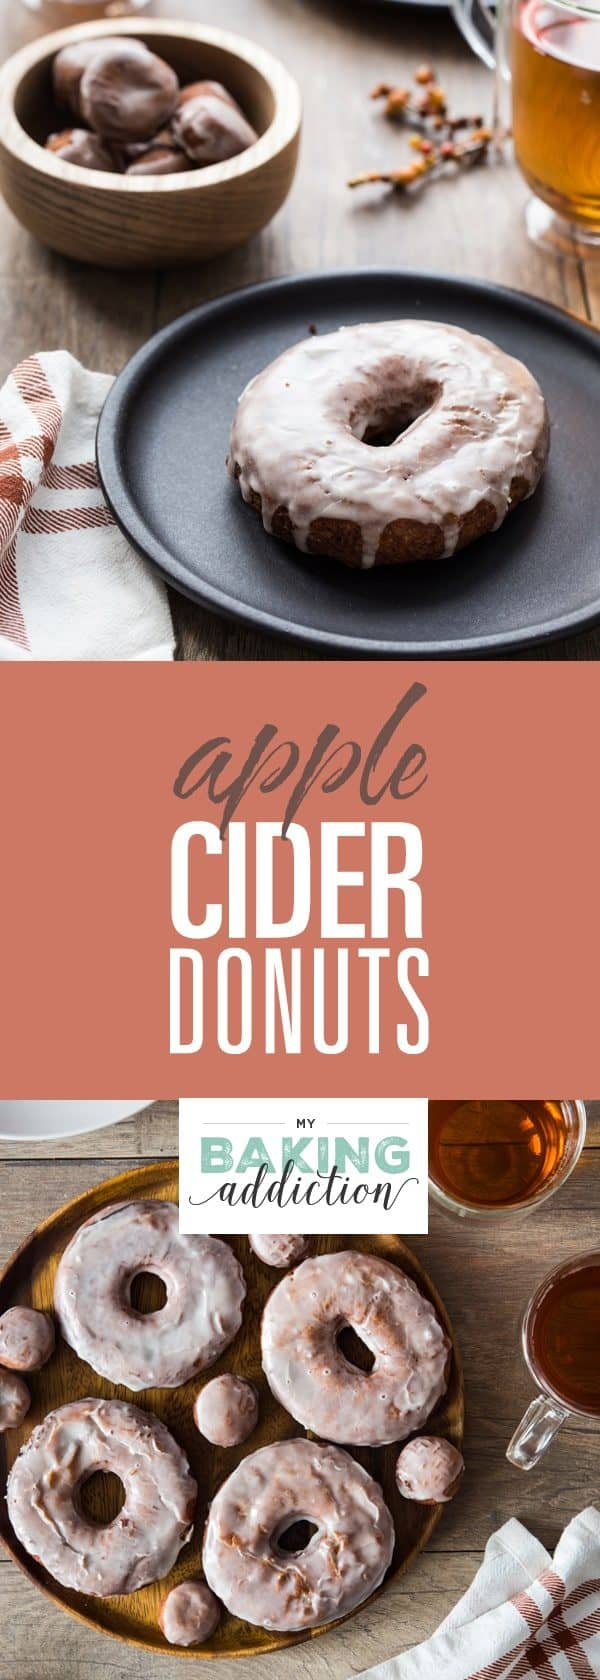 Apple Cider Donuts are loaded with delicious fall flavors. They're perfect for breakfast or dessert!